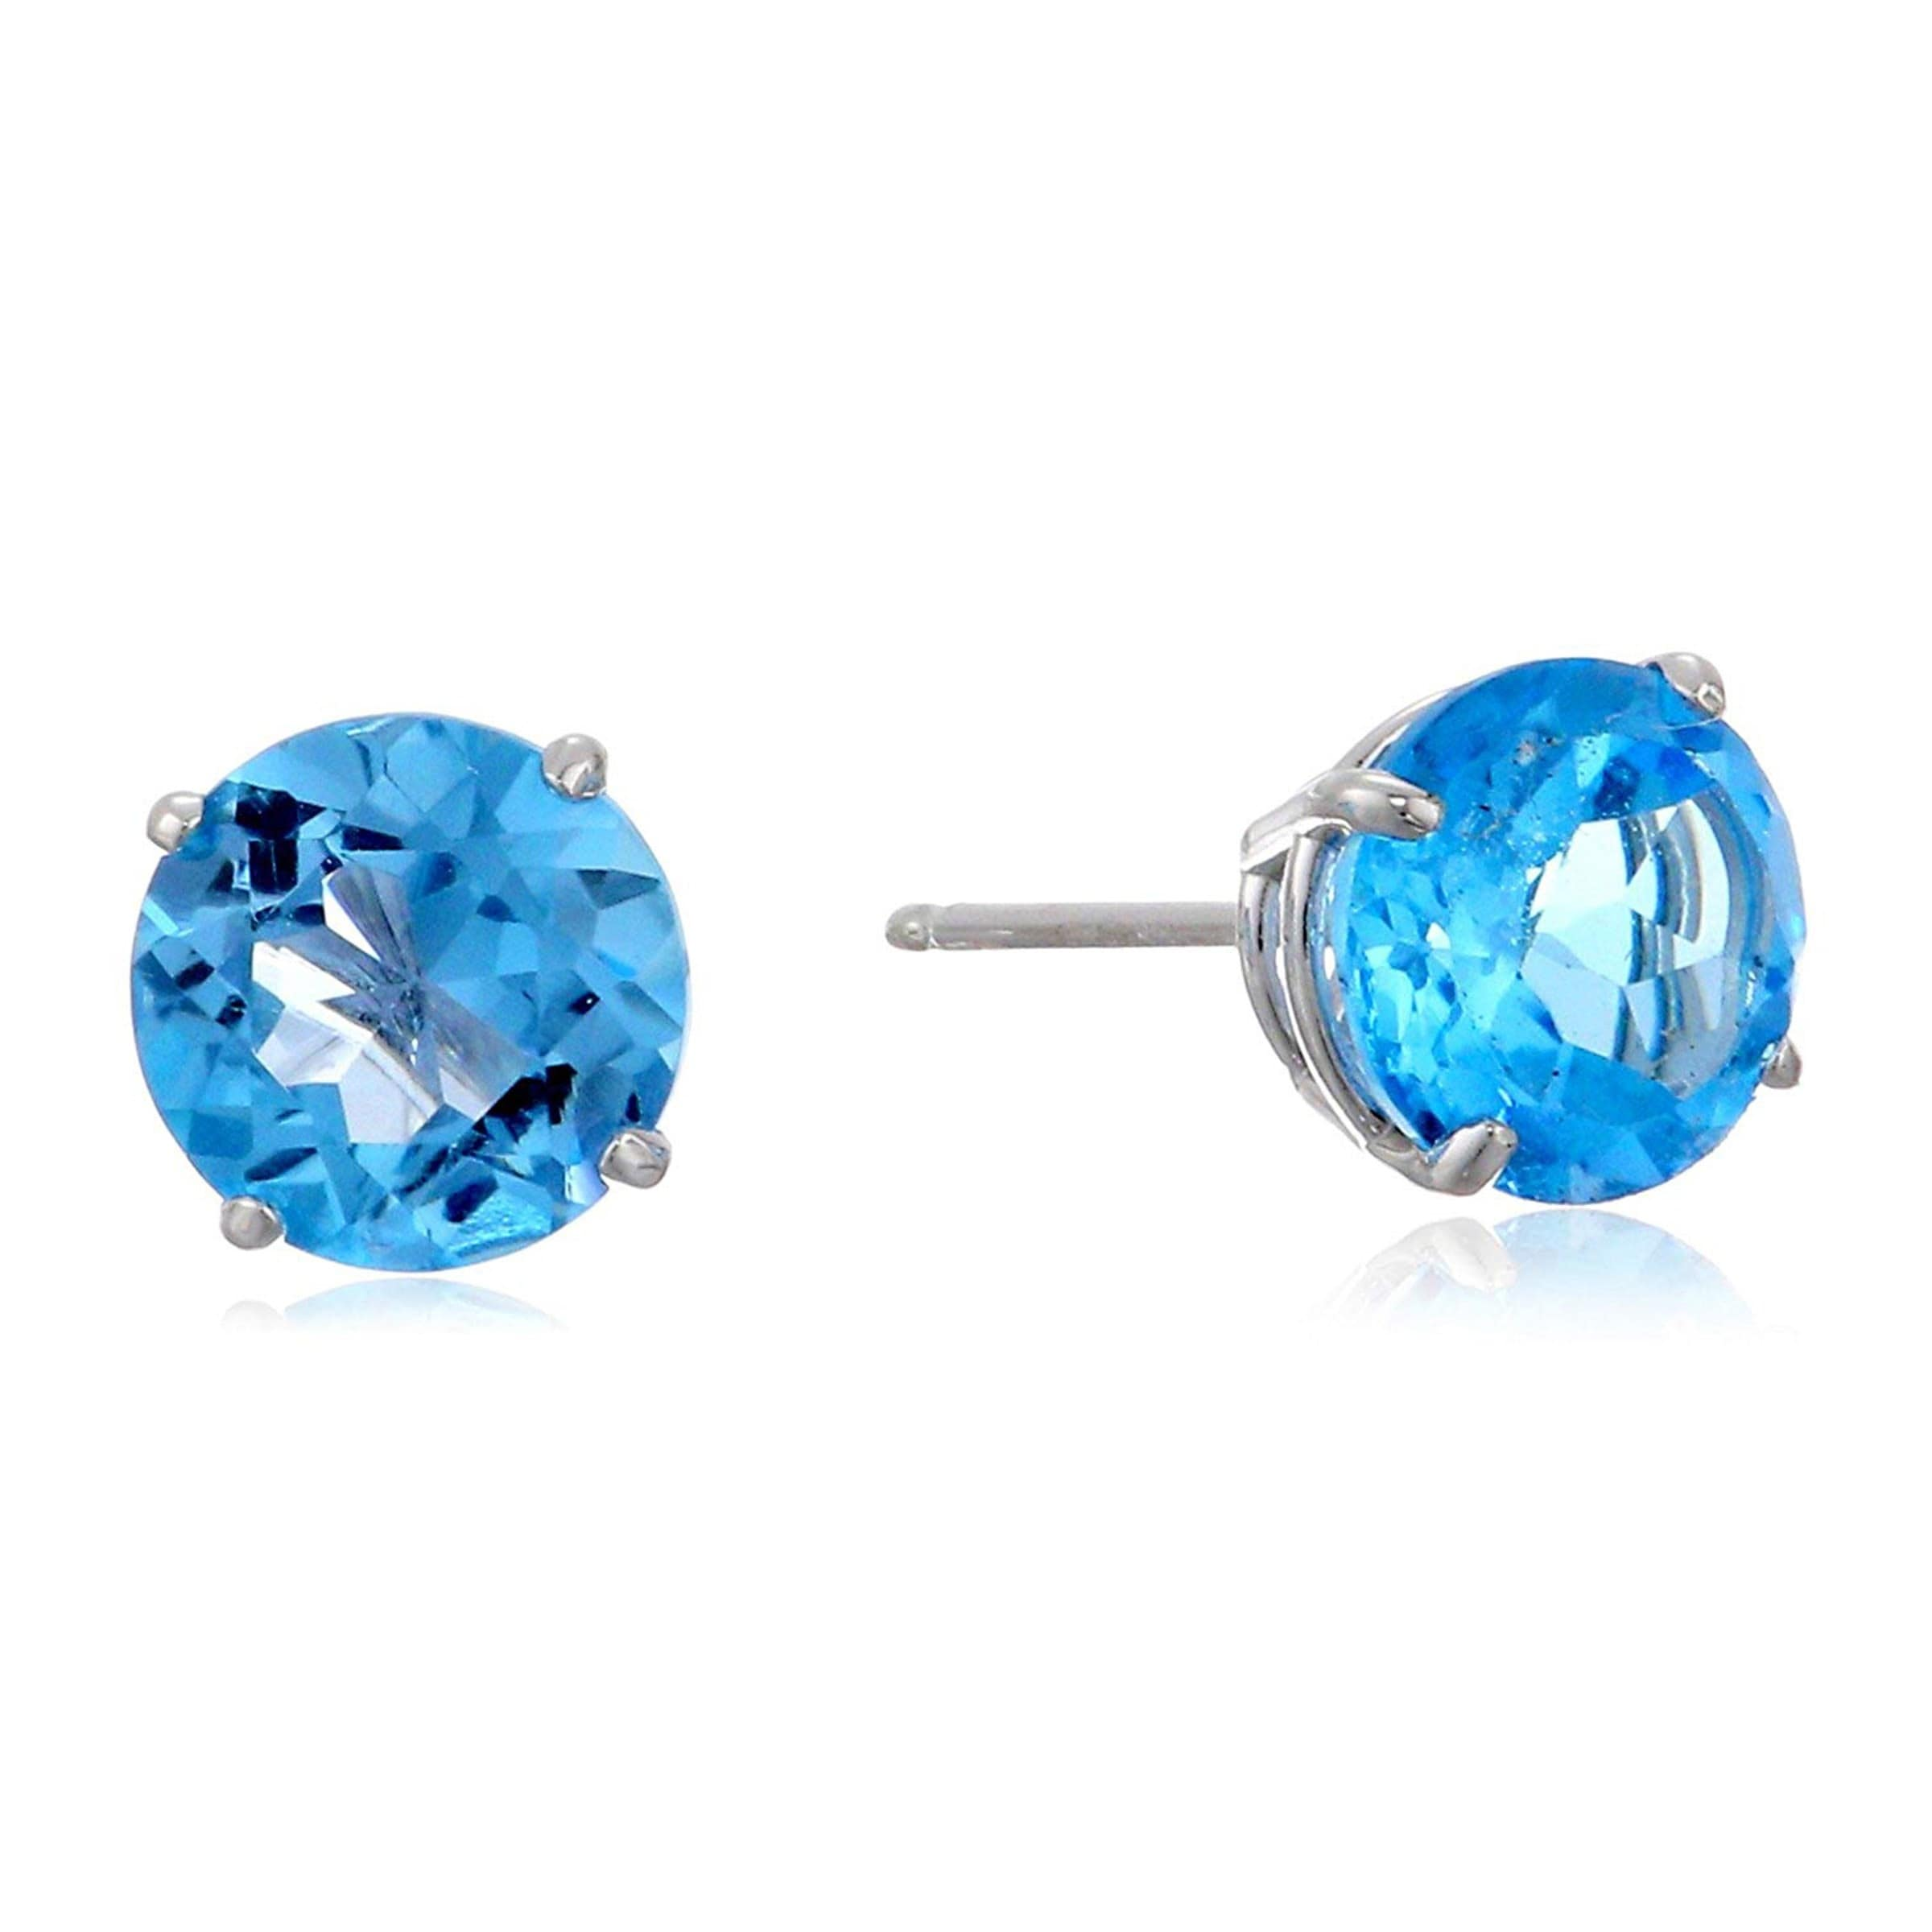 14k White Gold Princess Cut Swiss Blue Topaz Gemstone Stud Earrings